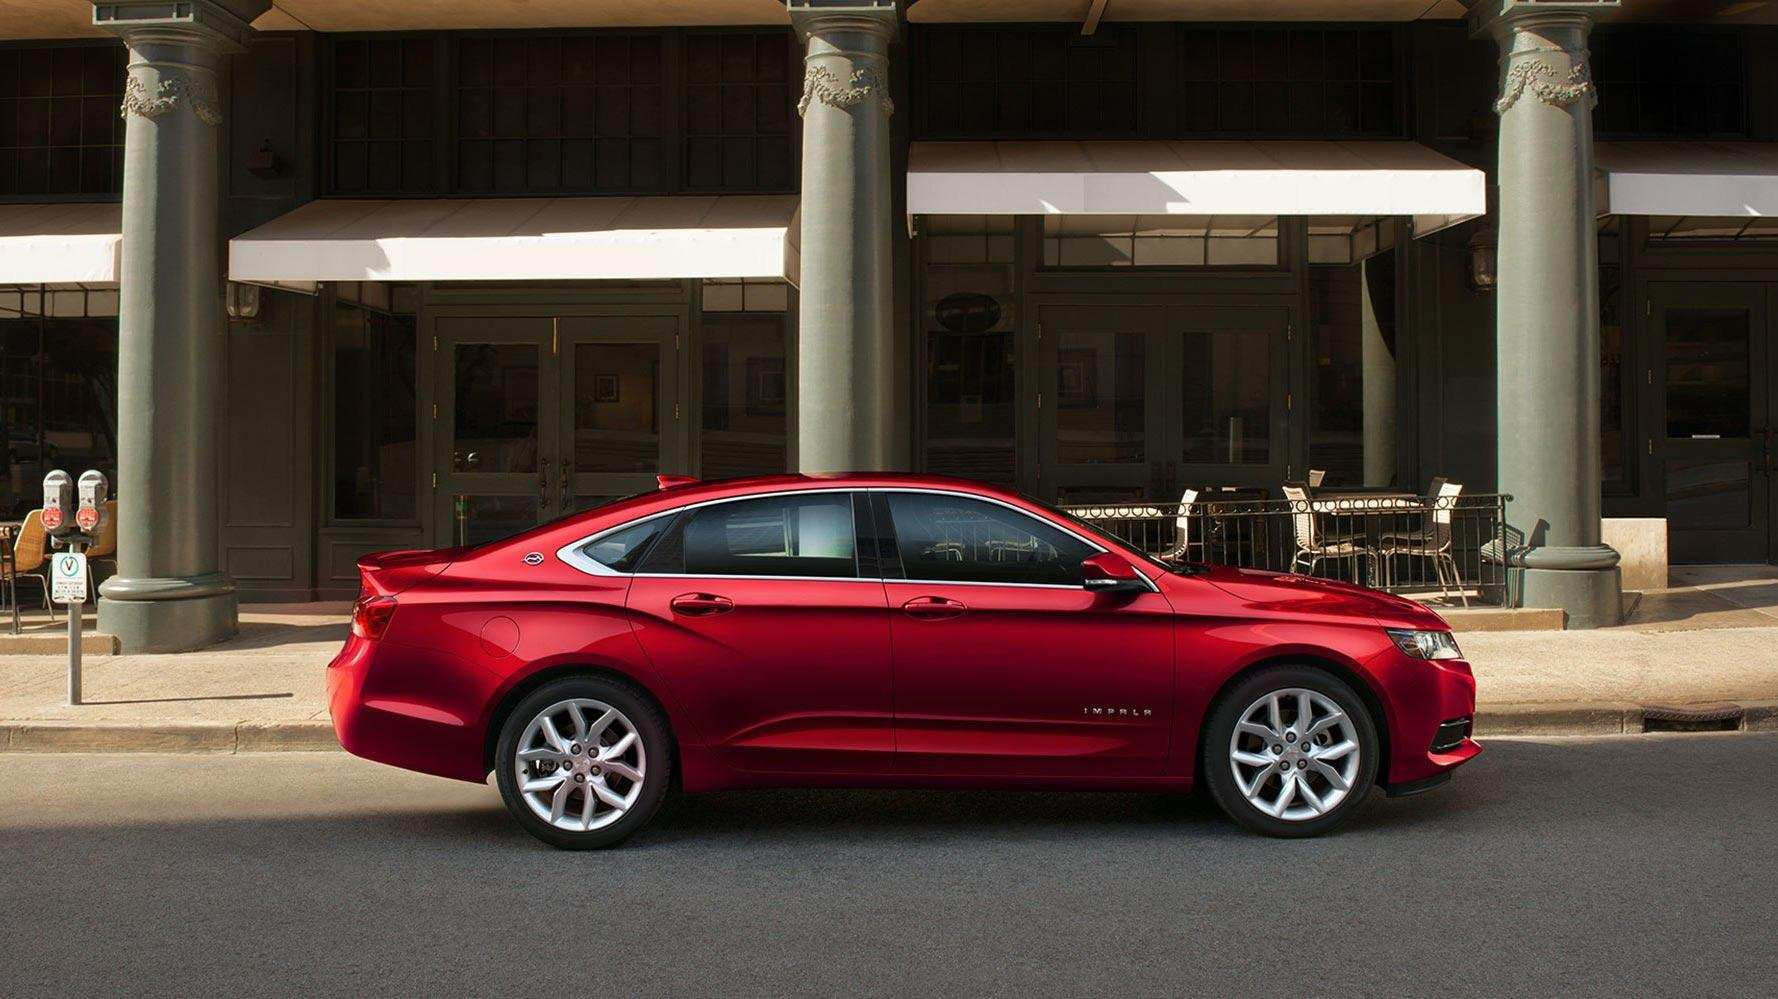 57 Best Review 2019 Chevrolet Impala Ss Rumors by 2019 Chevrolet Impala Ss